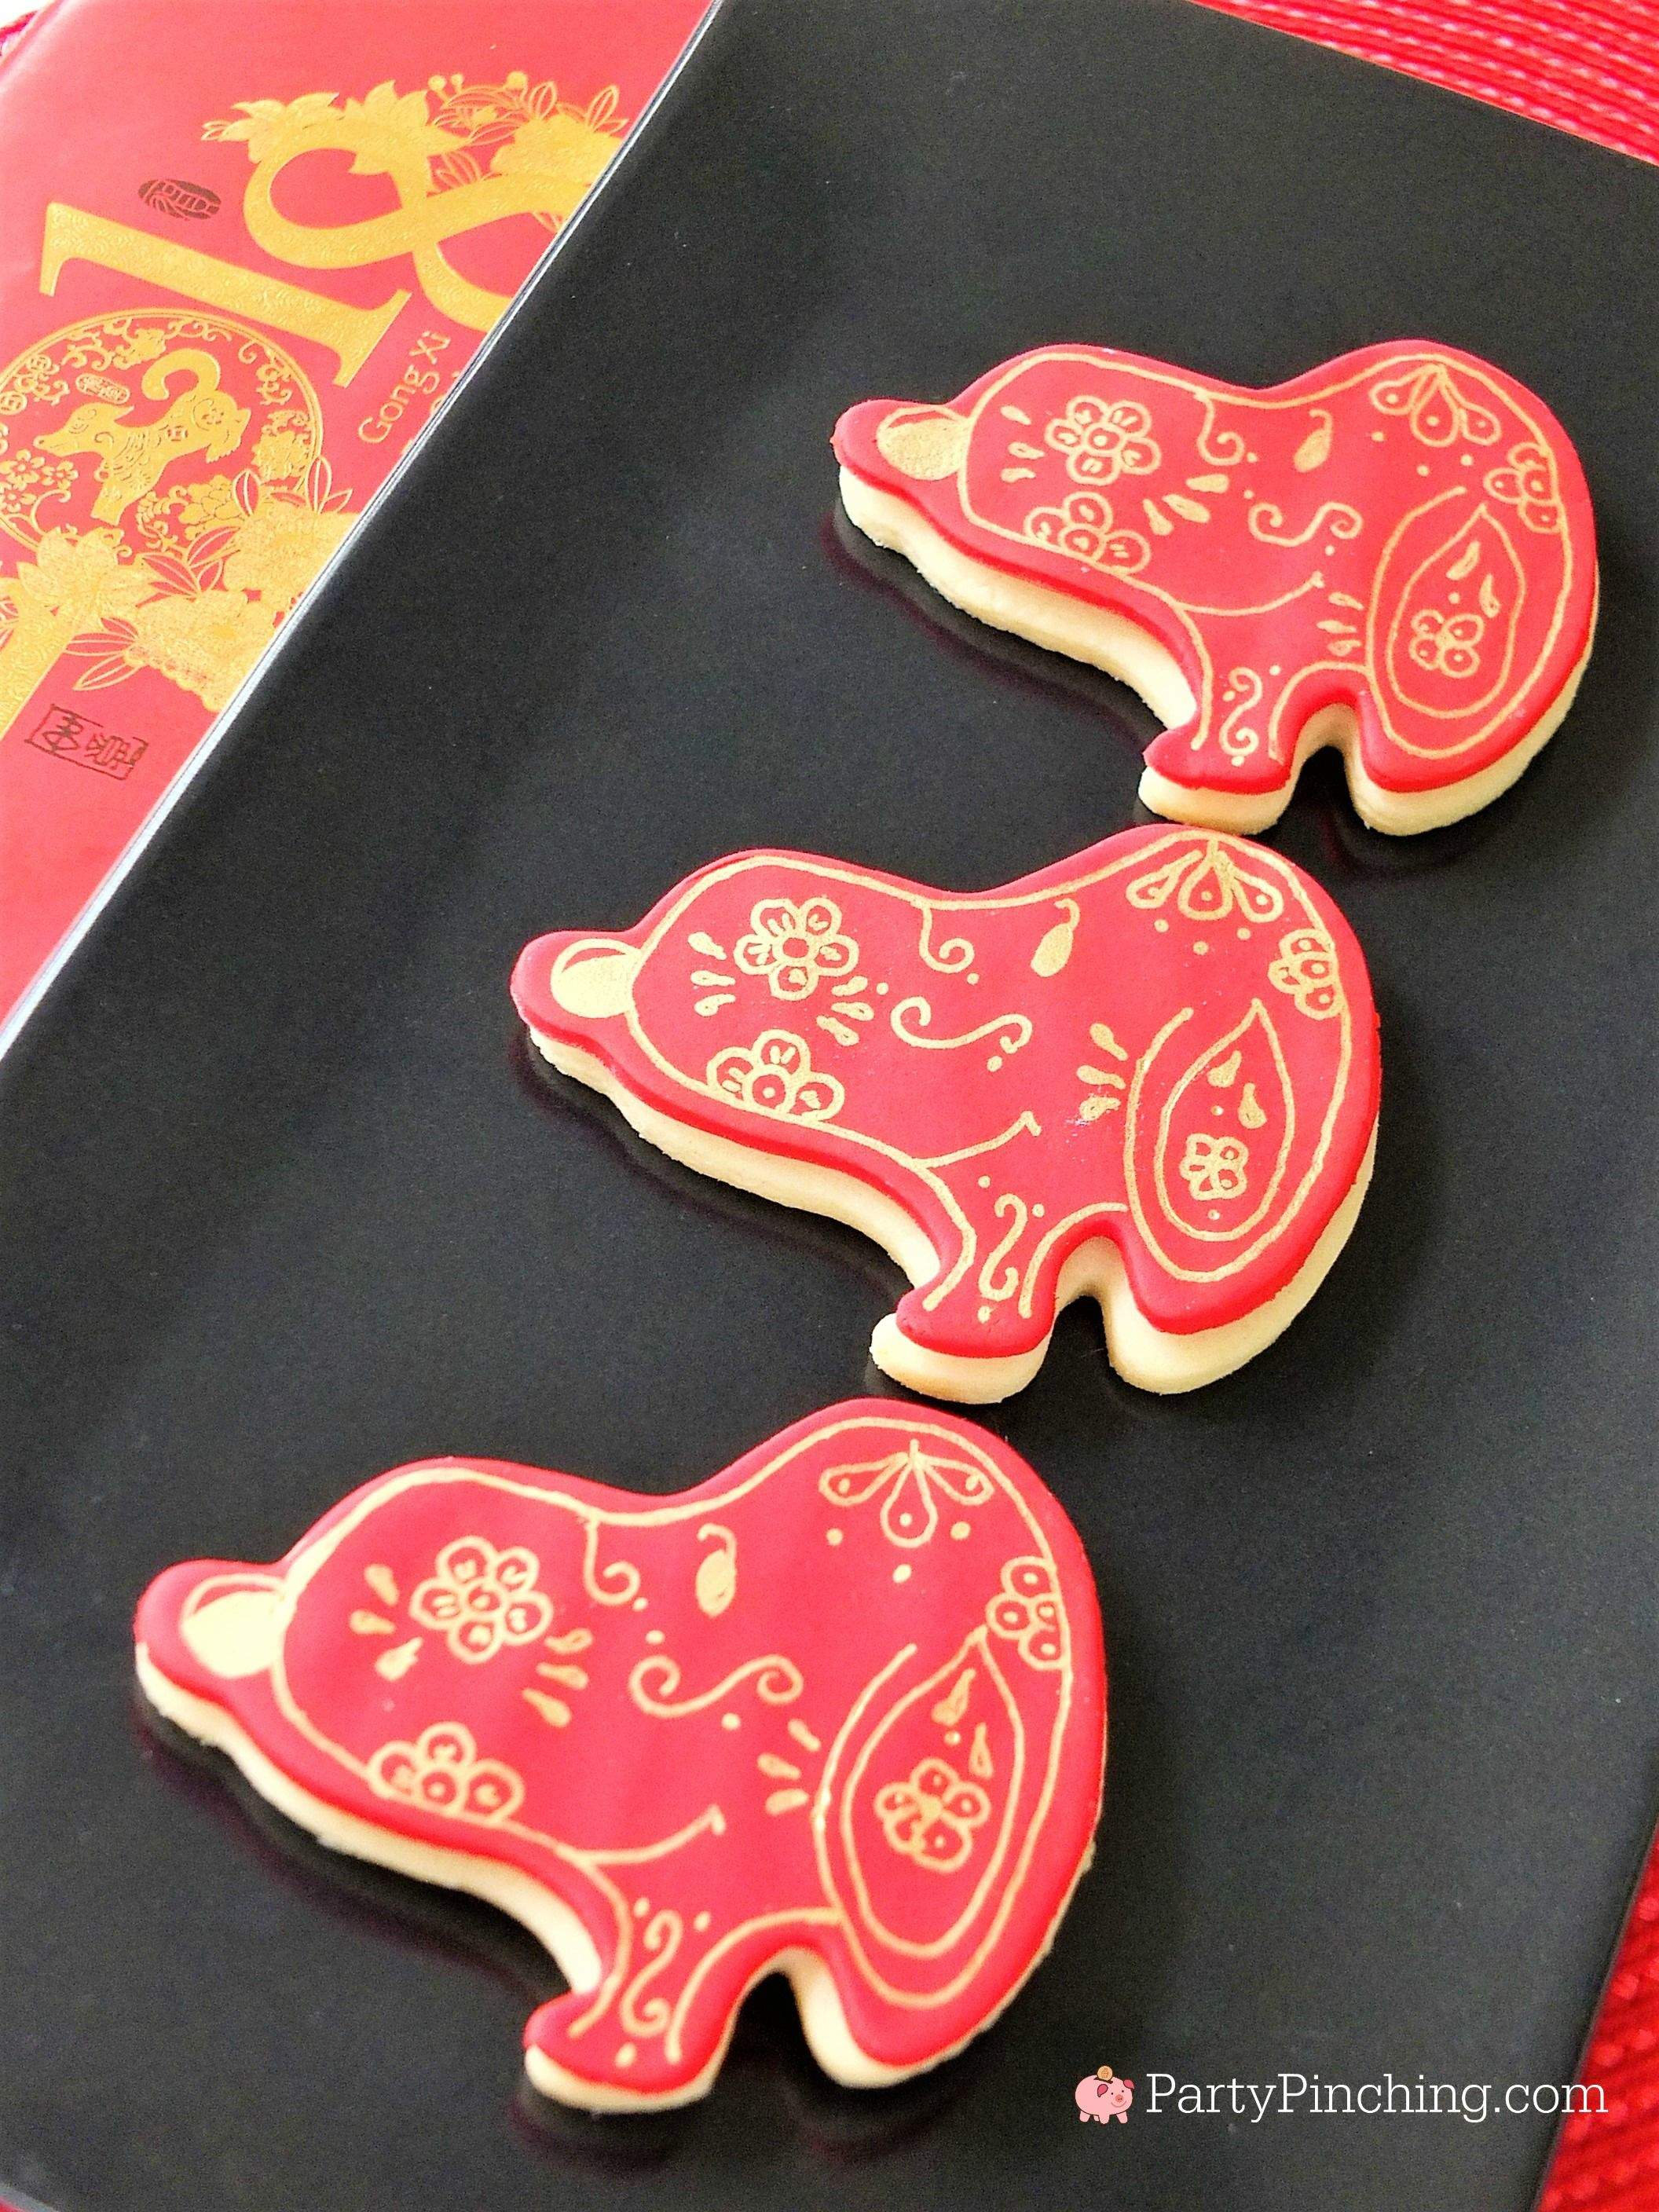 Lunar New Year Chinese New Year Year Of The Dog Snoopy Cookies